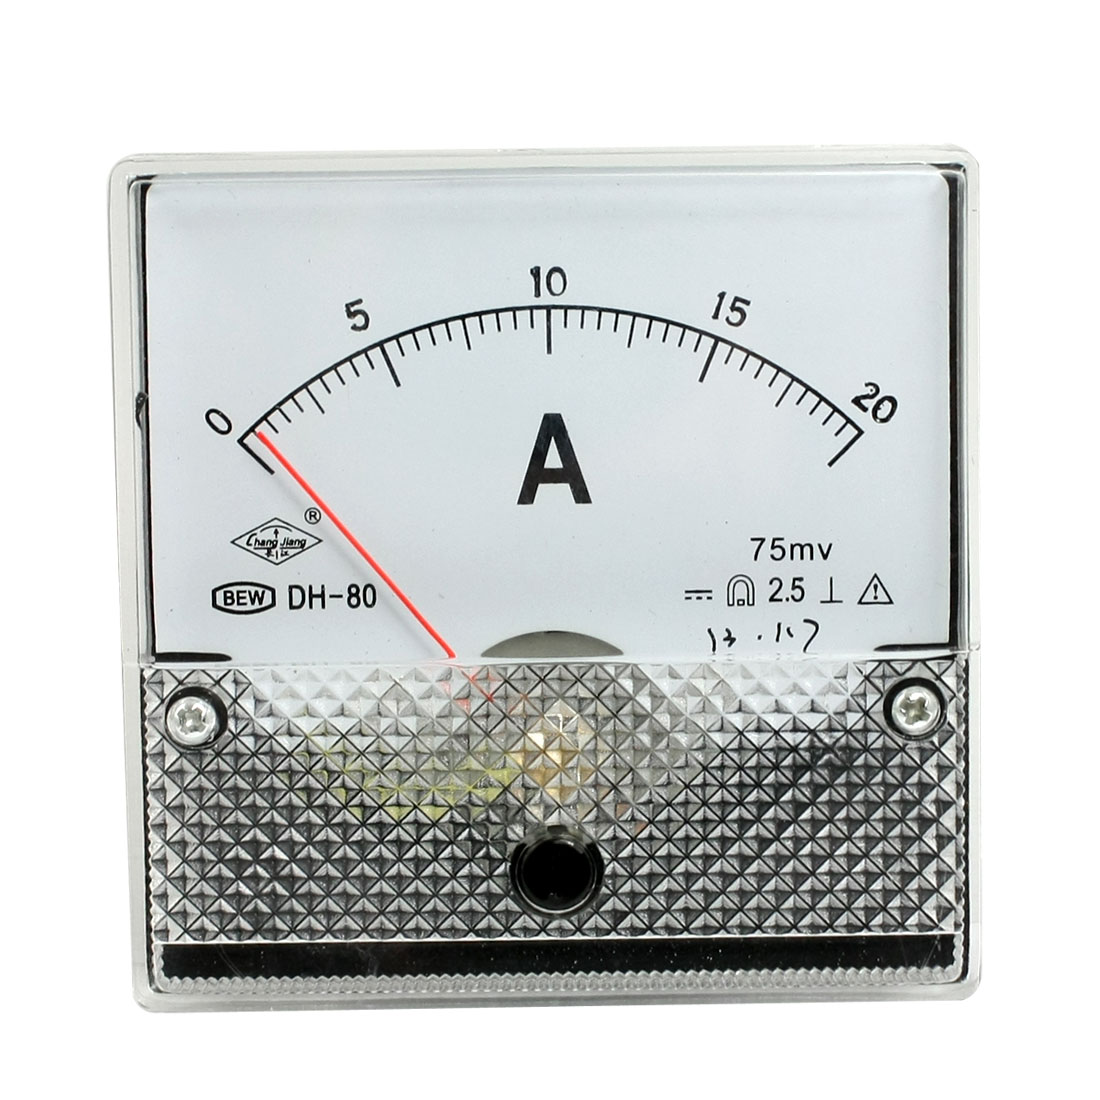 DH-80 DC 0-20A Rectangle Analog Panel Ammeter Gauge